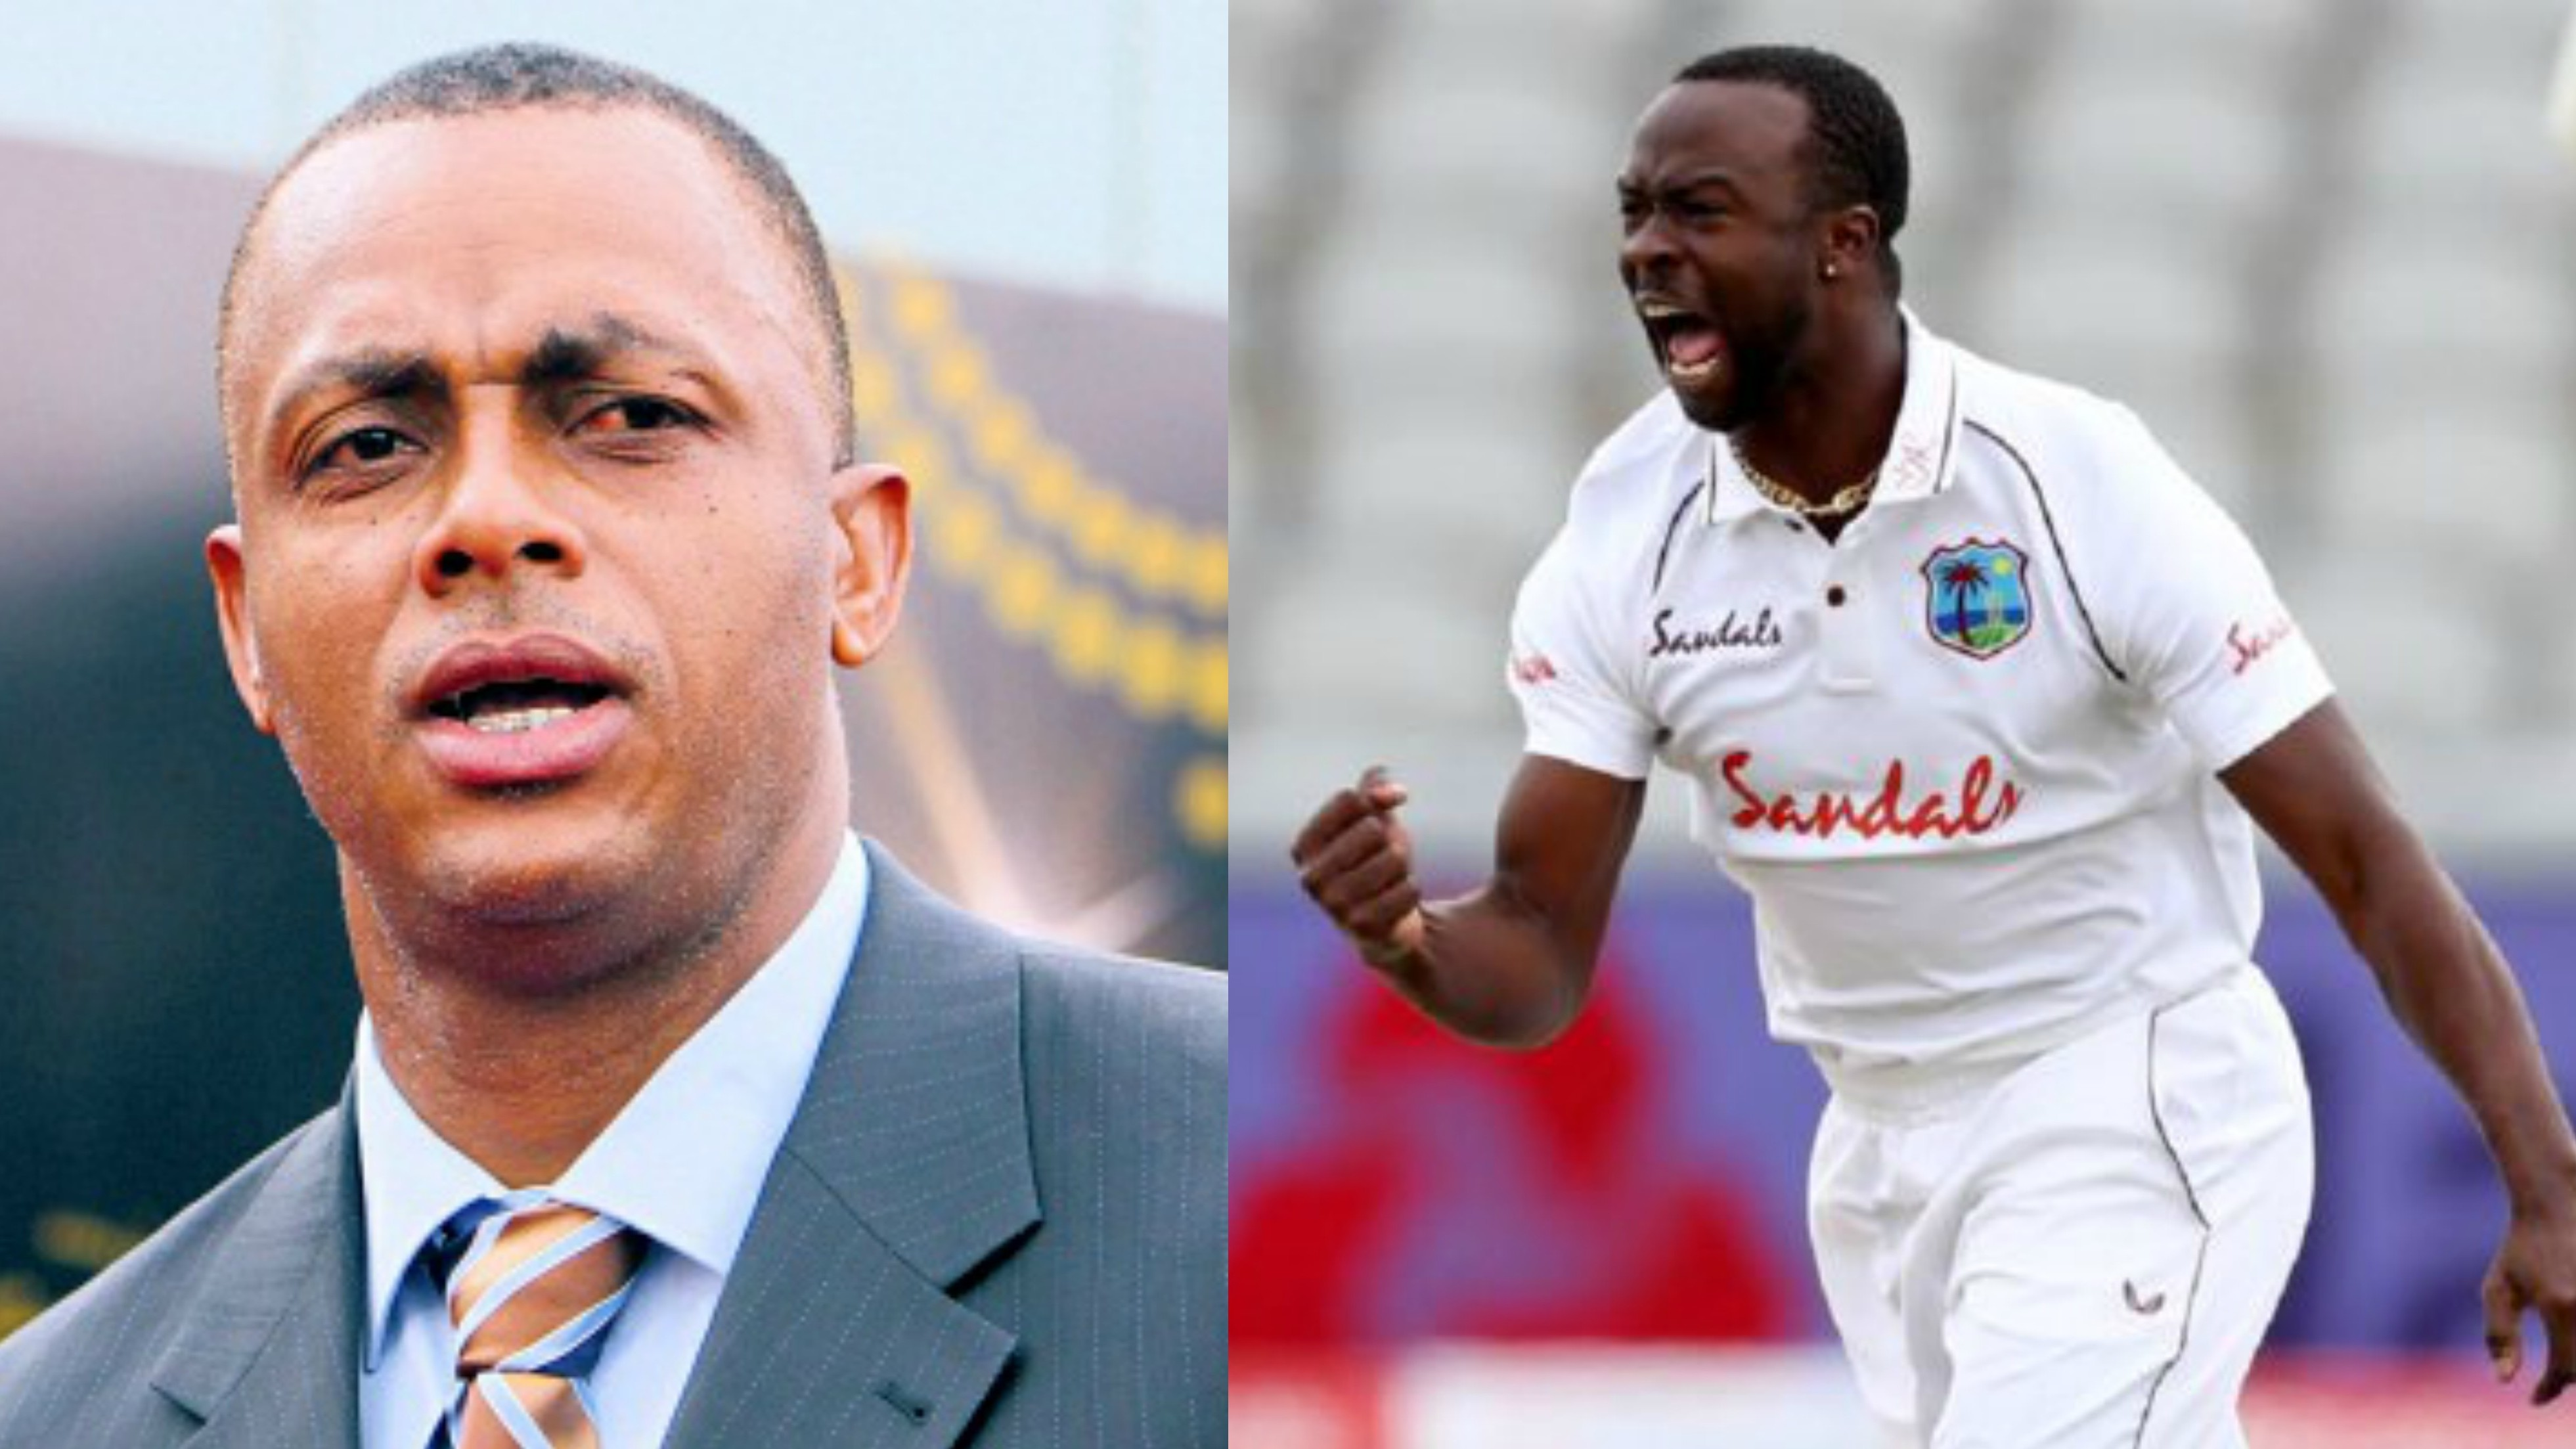 ENG v WI 2020: Fit enough to get to 250 or 300 Test wickets: Courtney Walsh on Kemar Roach